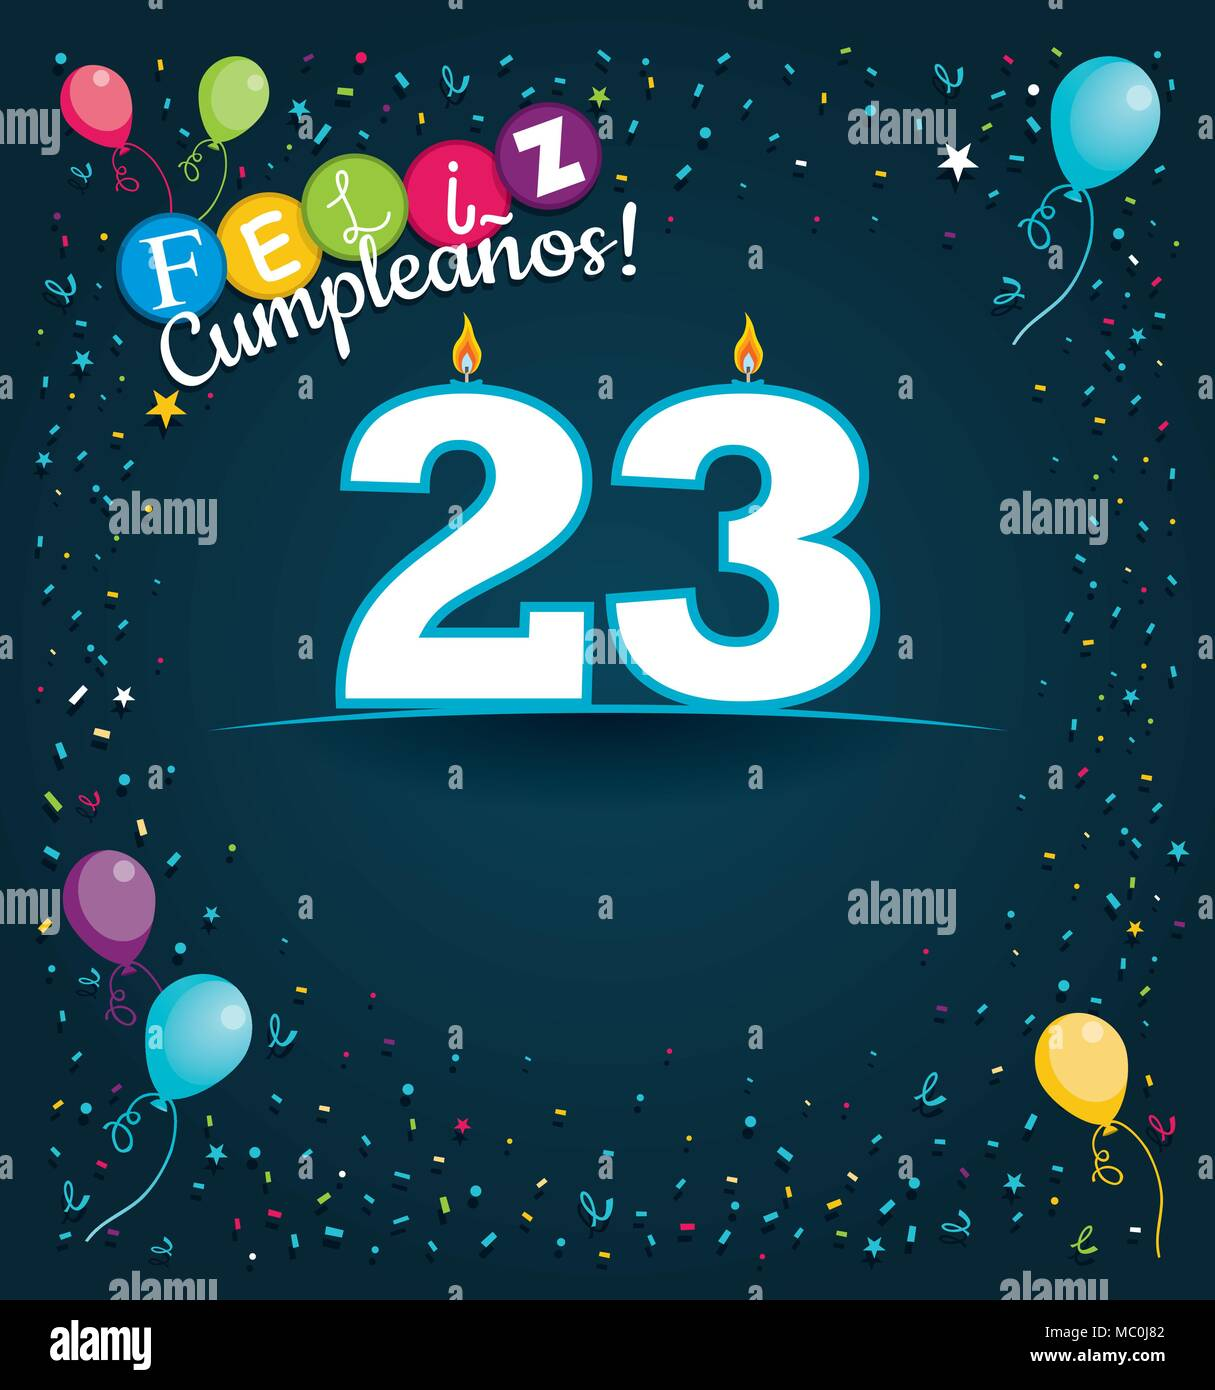 Happy Birthday 23 in Spanish language - Greeting card with white candles in the form of number with background of balloons and confetti - Stock Vector